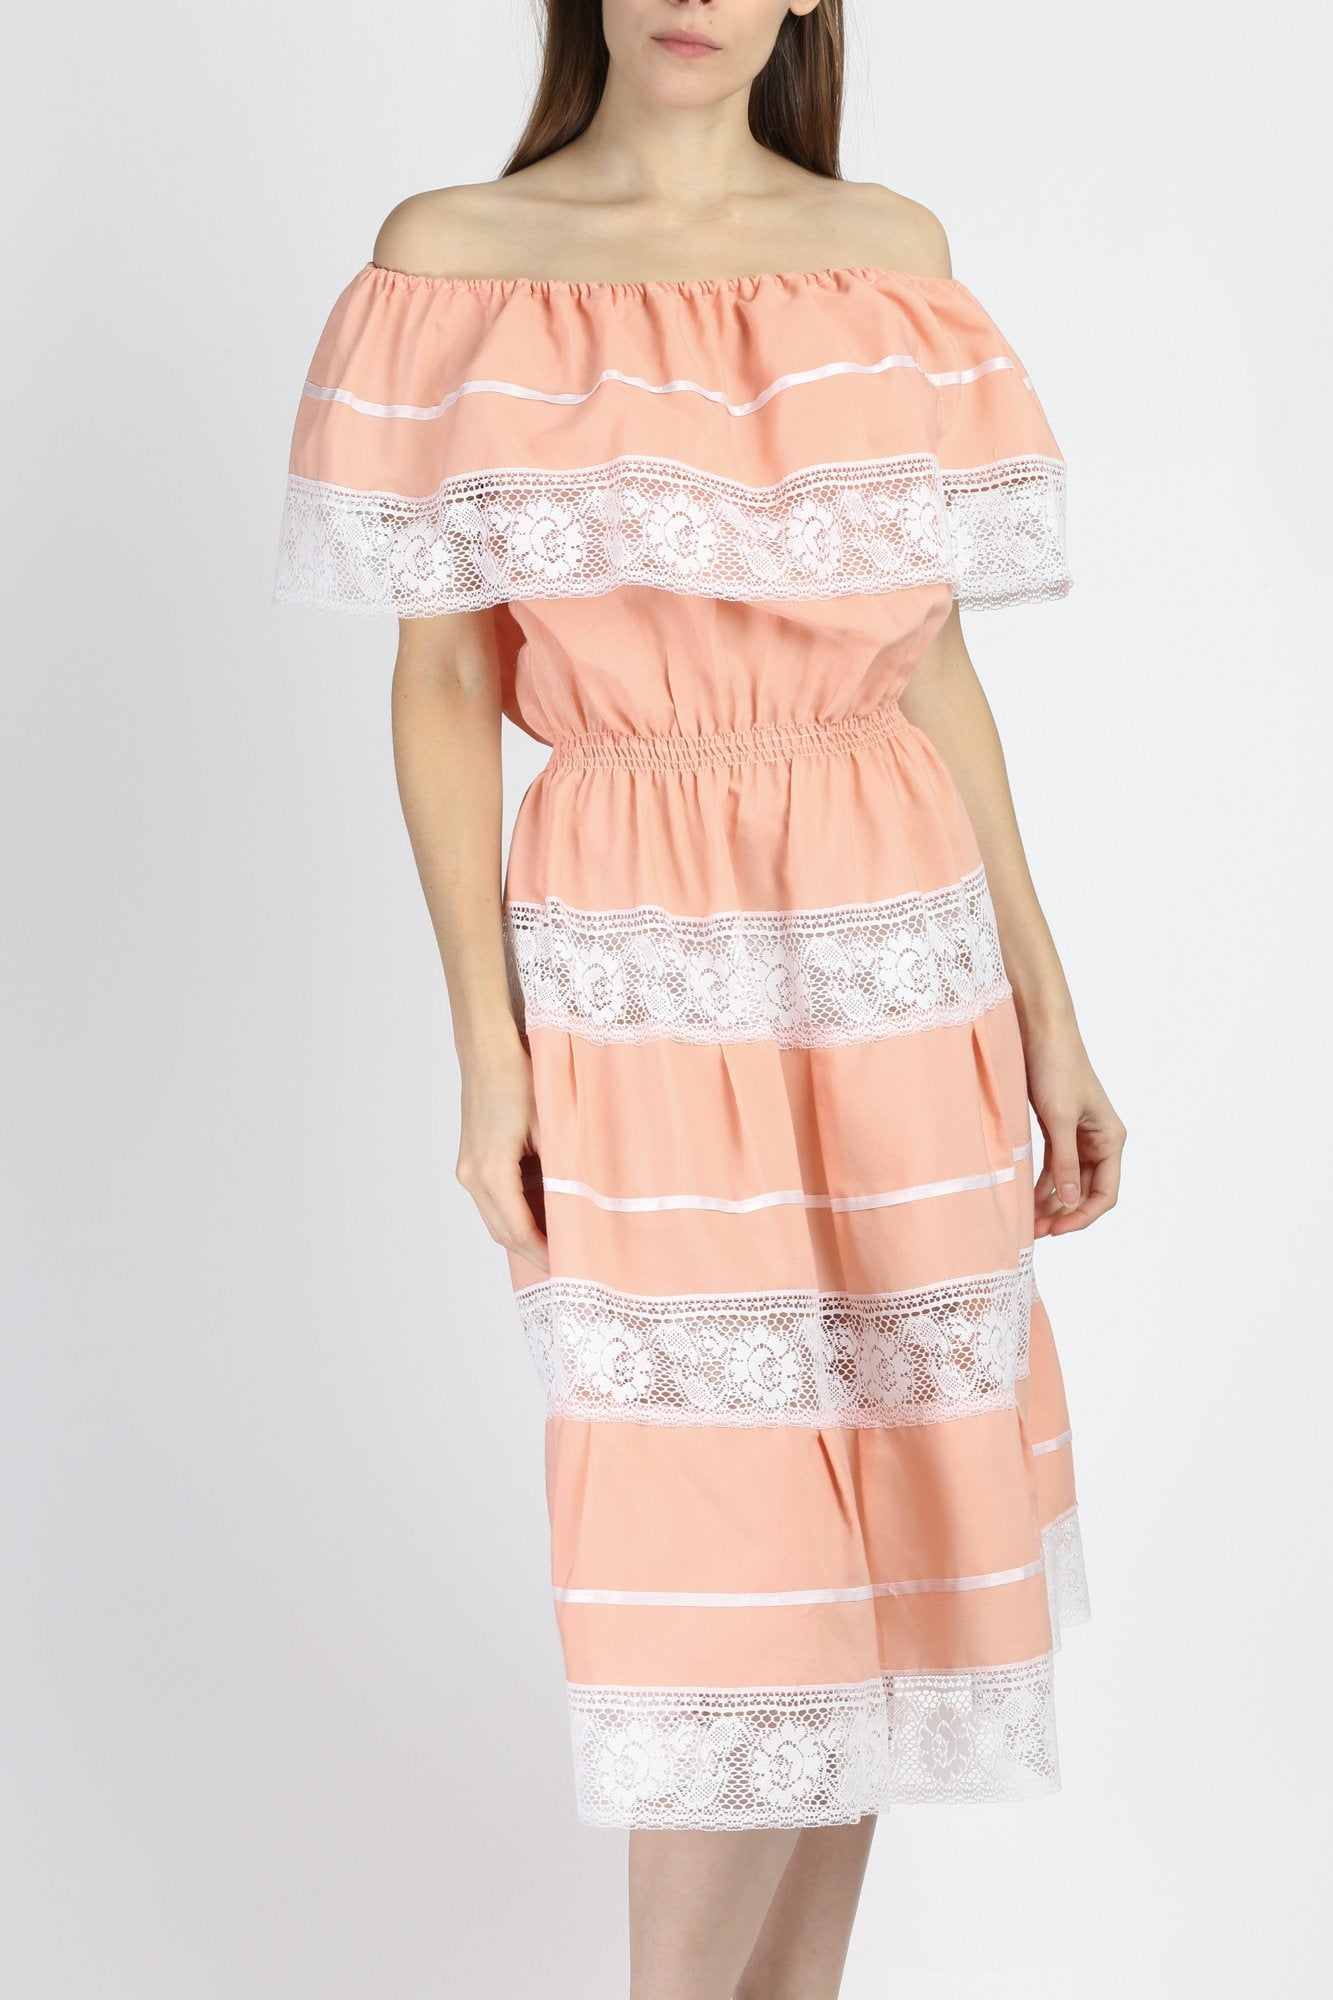 70s Mexican Peach Pink Lace Tiered Midi Dress - Large to XL